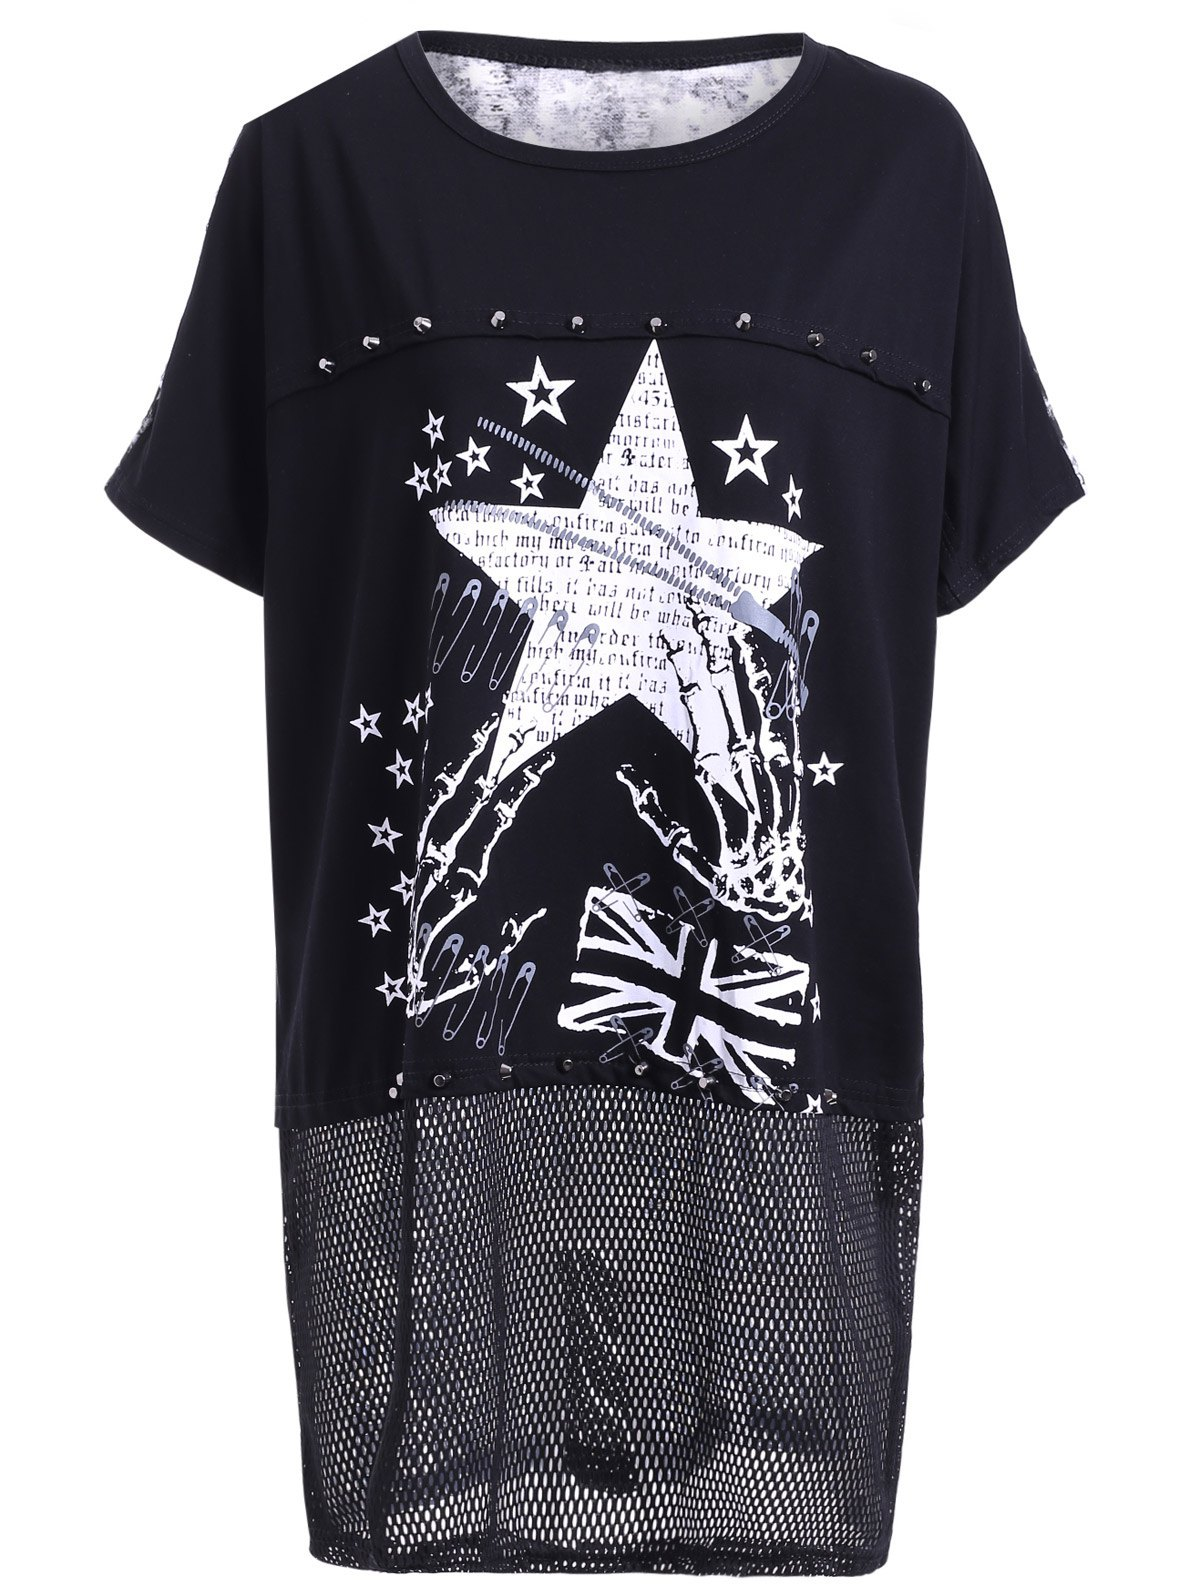 Trendy Women's Scoop Neck Star Pattern Short Sleeves T-Shirt - BLACK ONE SIZE(FIT SIZE XS TO M)